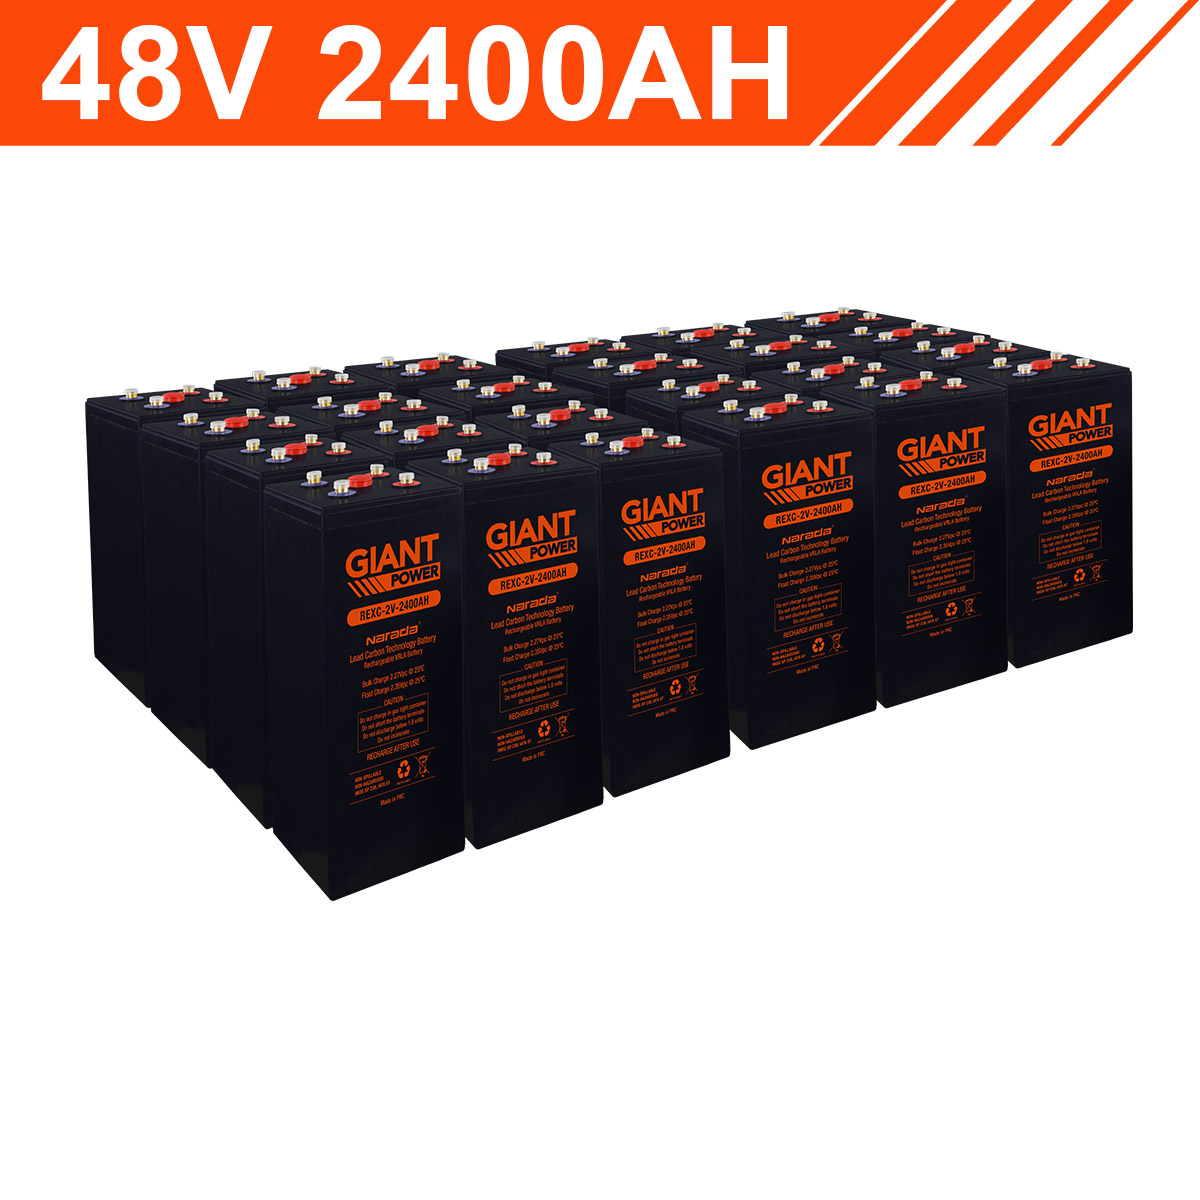 115 2kwh 48v 2400ah Lead Carbon Battery Bank 2v Cells